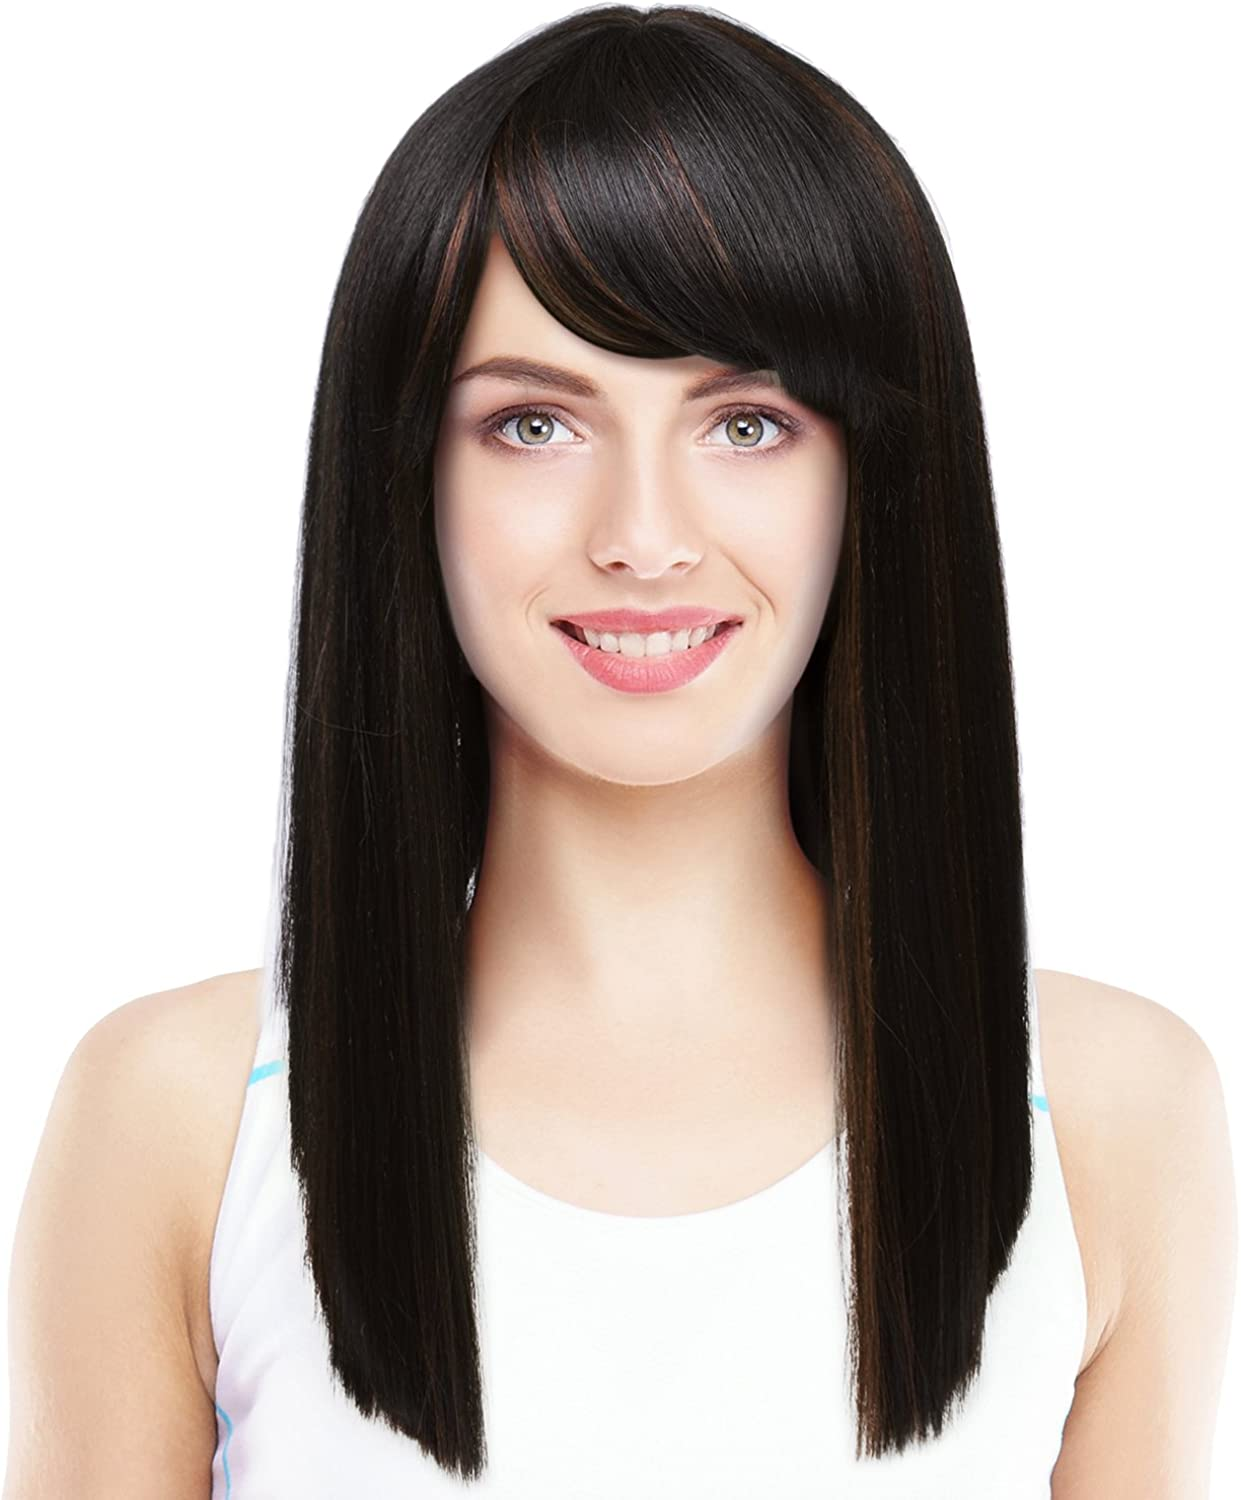 Amazon Com Silky Straight Wig With Bangs Natural Looking Medium Length Blunt Cut Synthetic Full Hair Wig For Women Brown Black Clothing